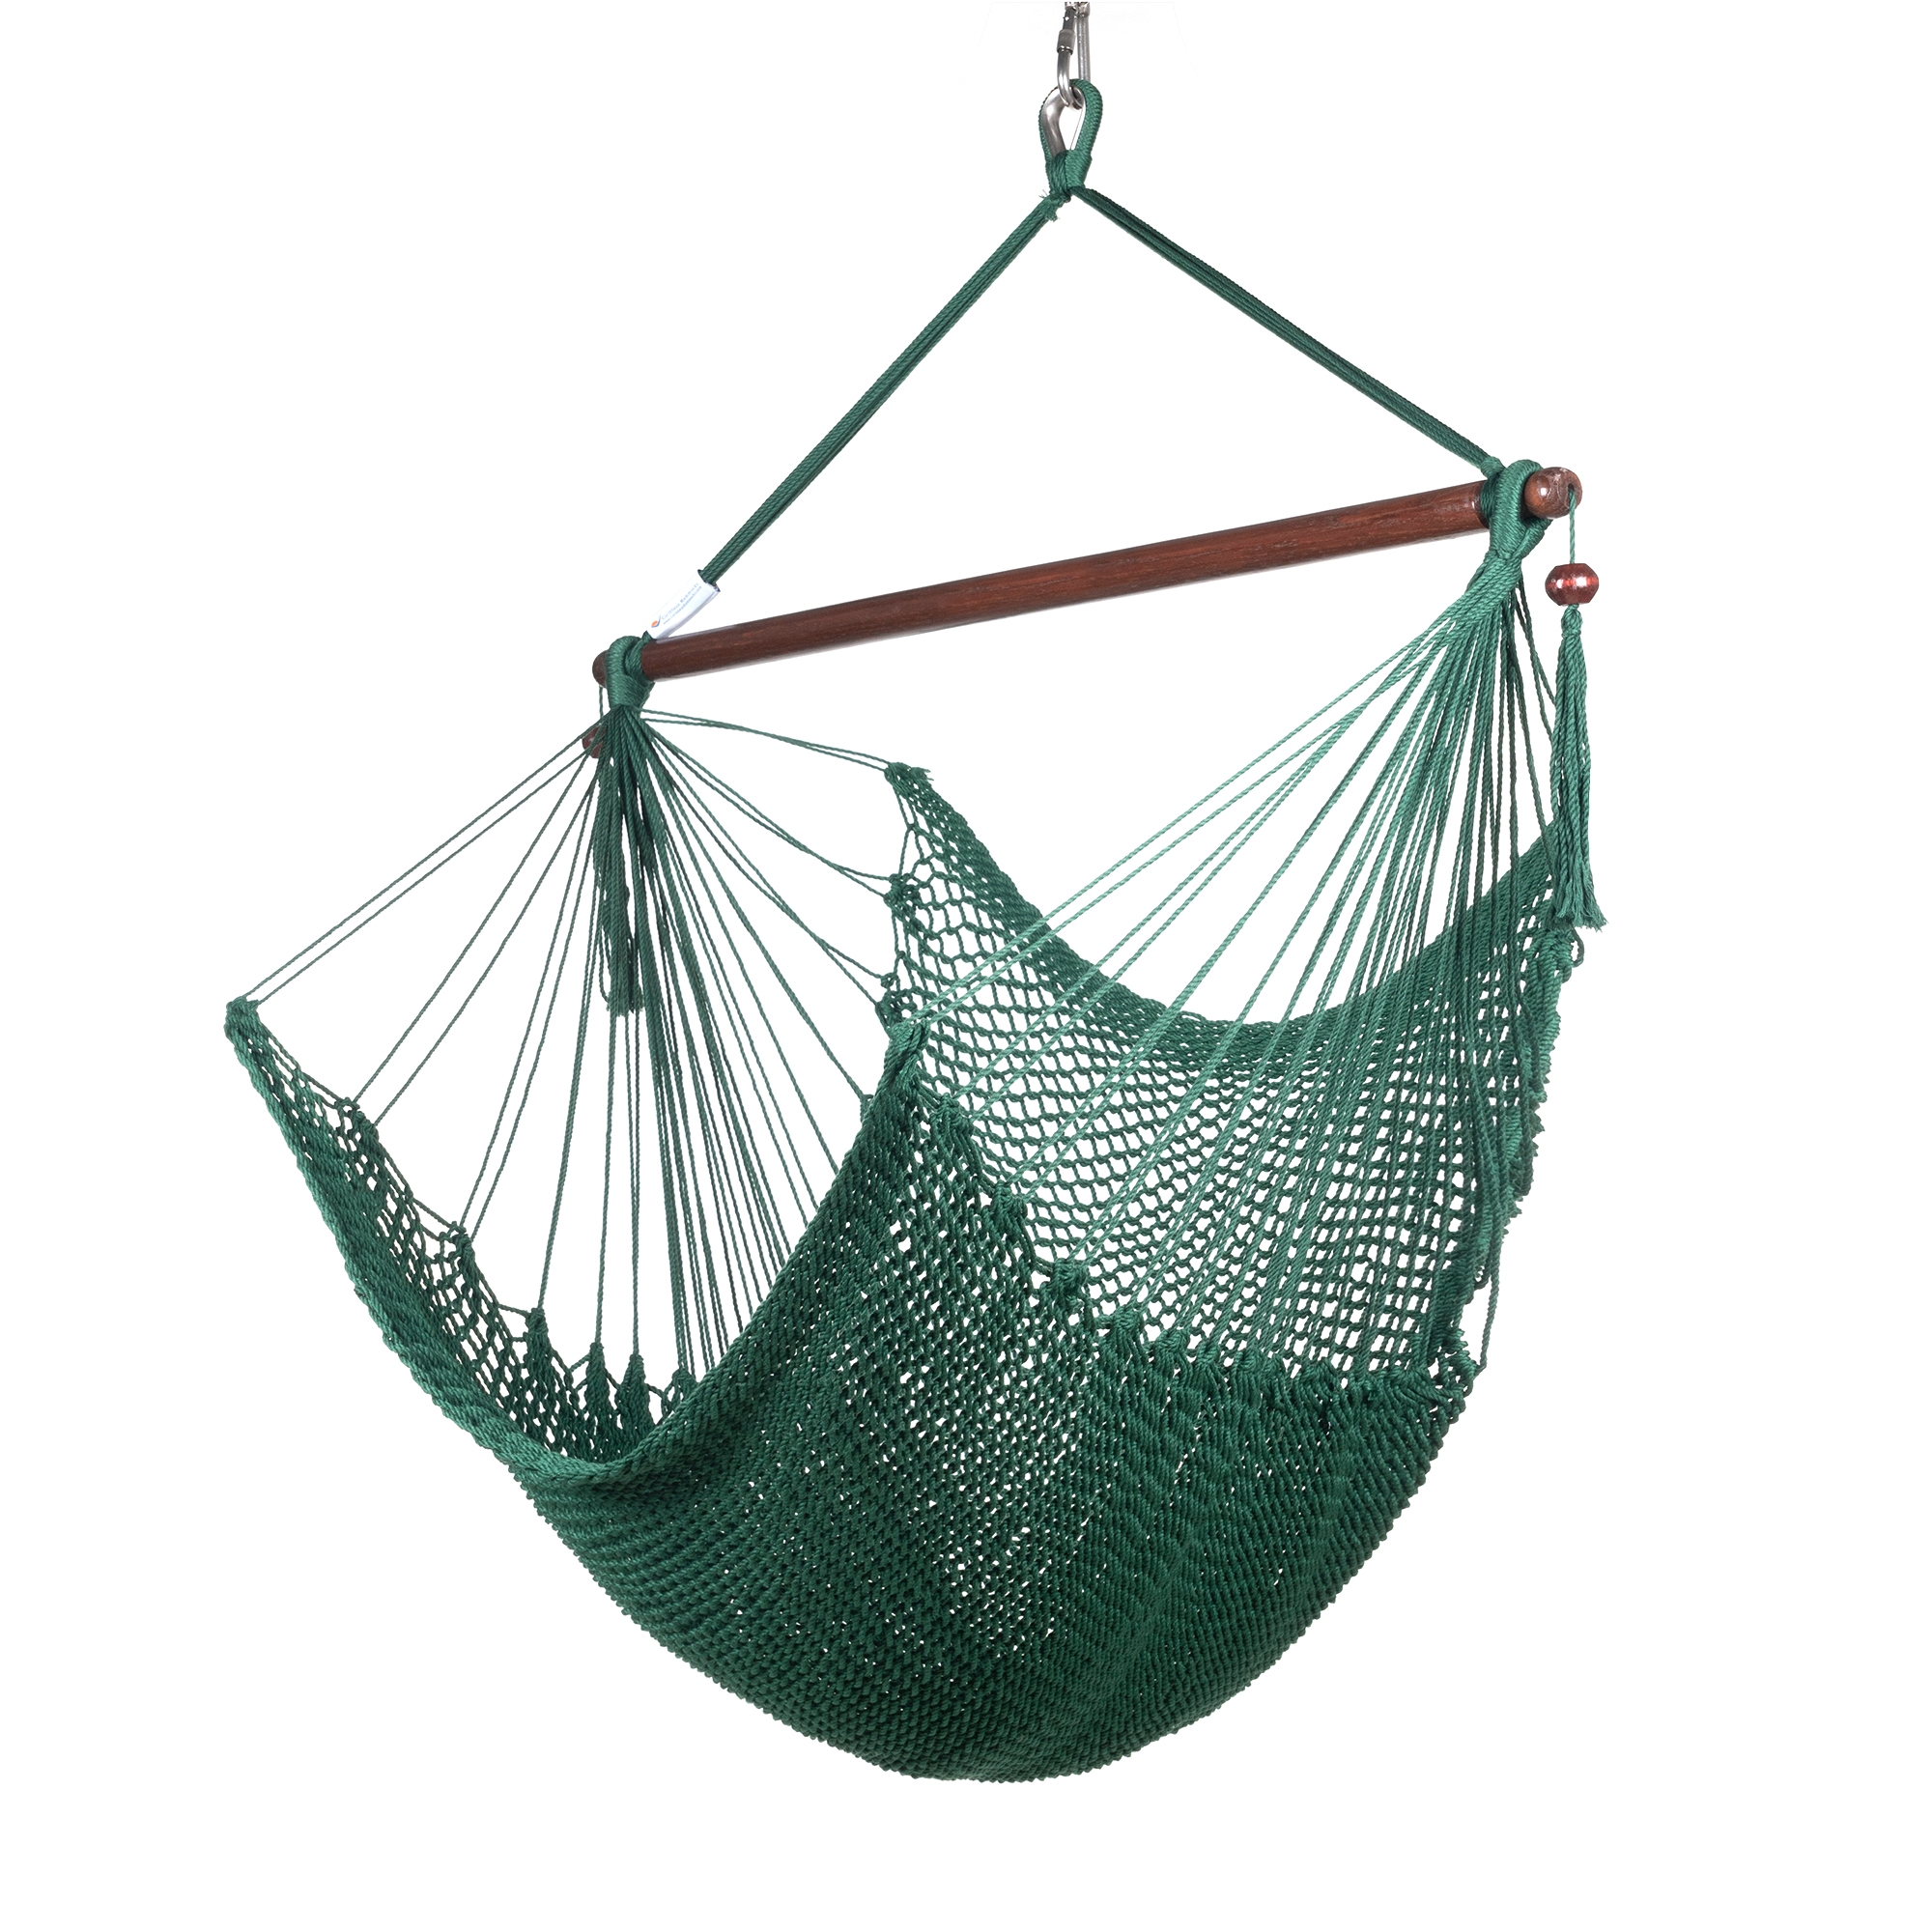 Caribbean Hammock Chair With Footrest 40 Inch Soft Spun